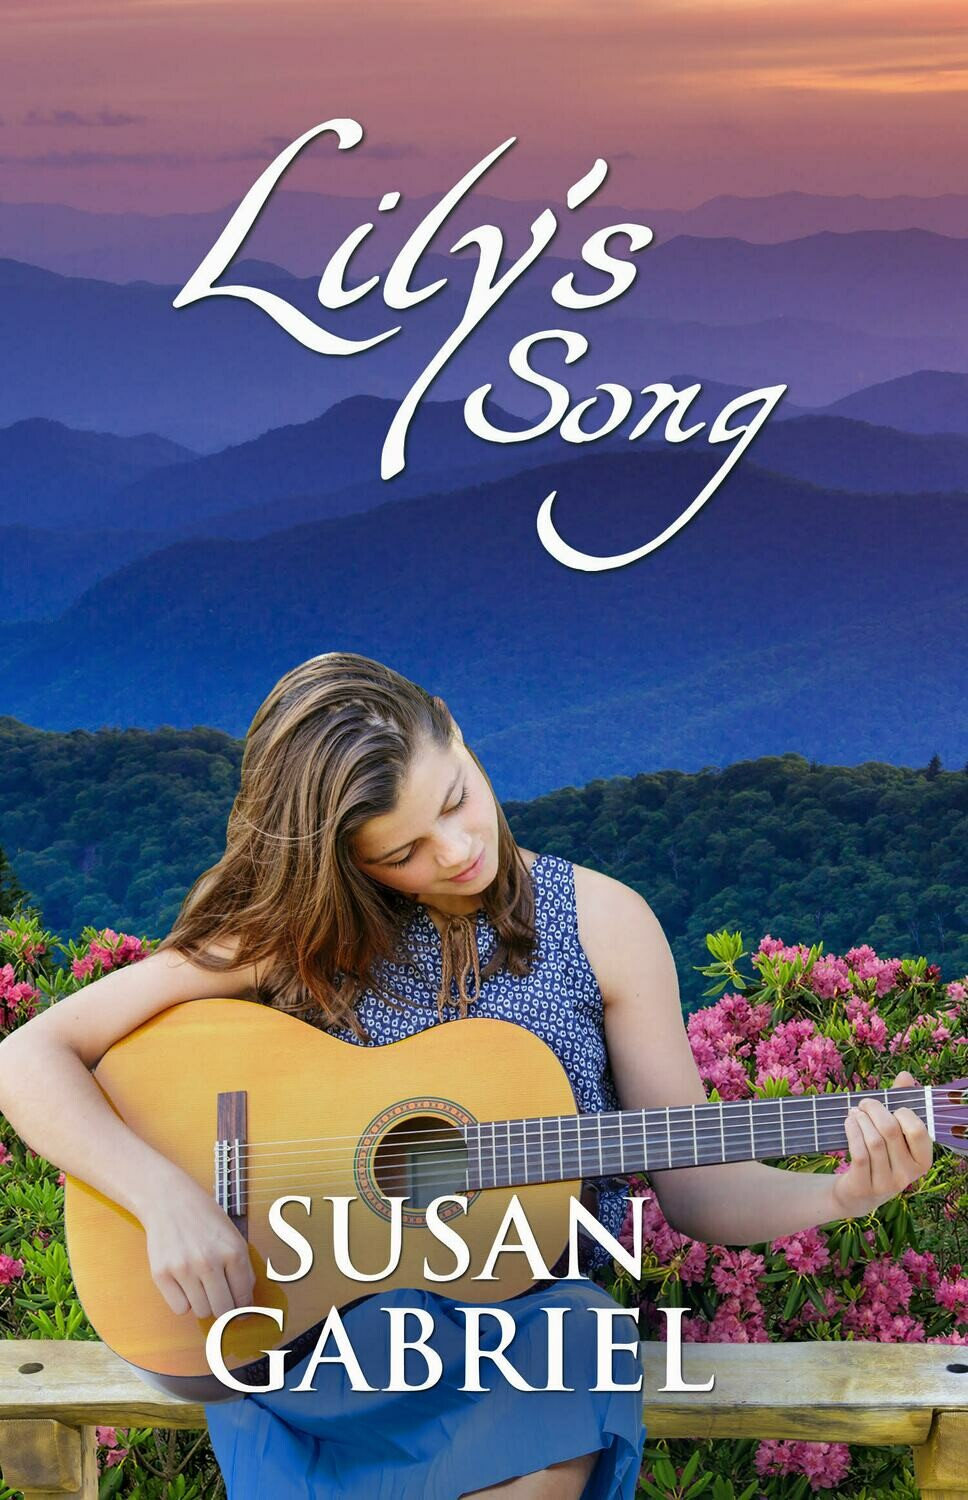 Lily's Song, hardcover, autographed by author